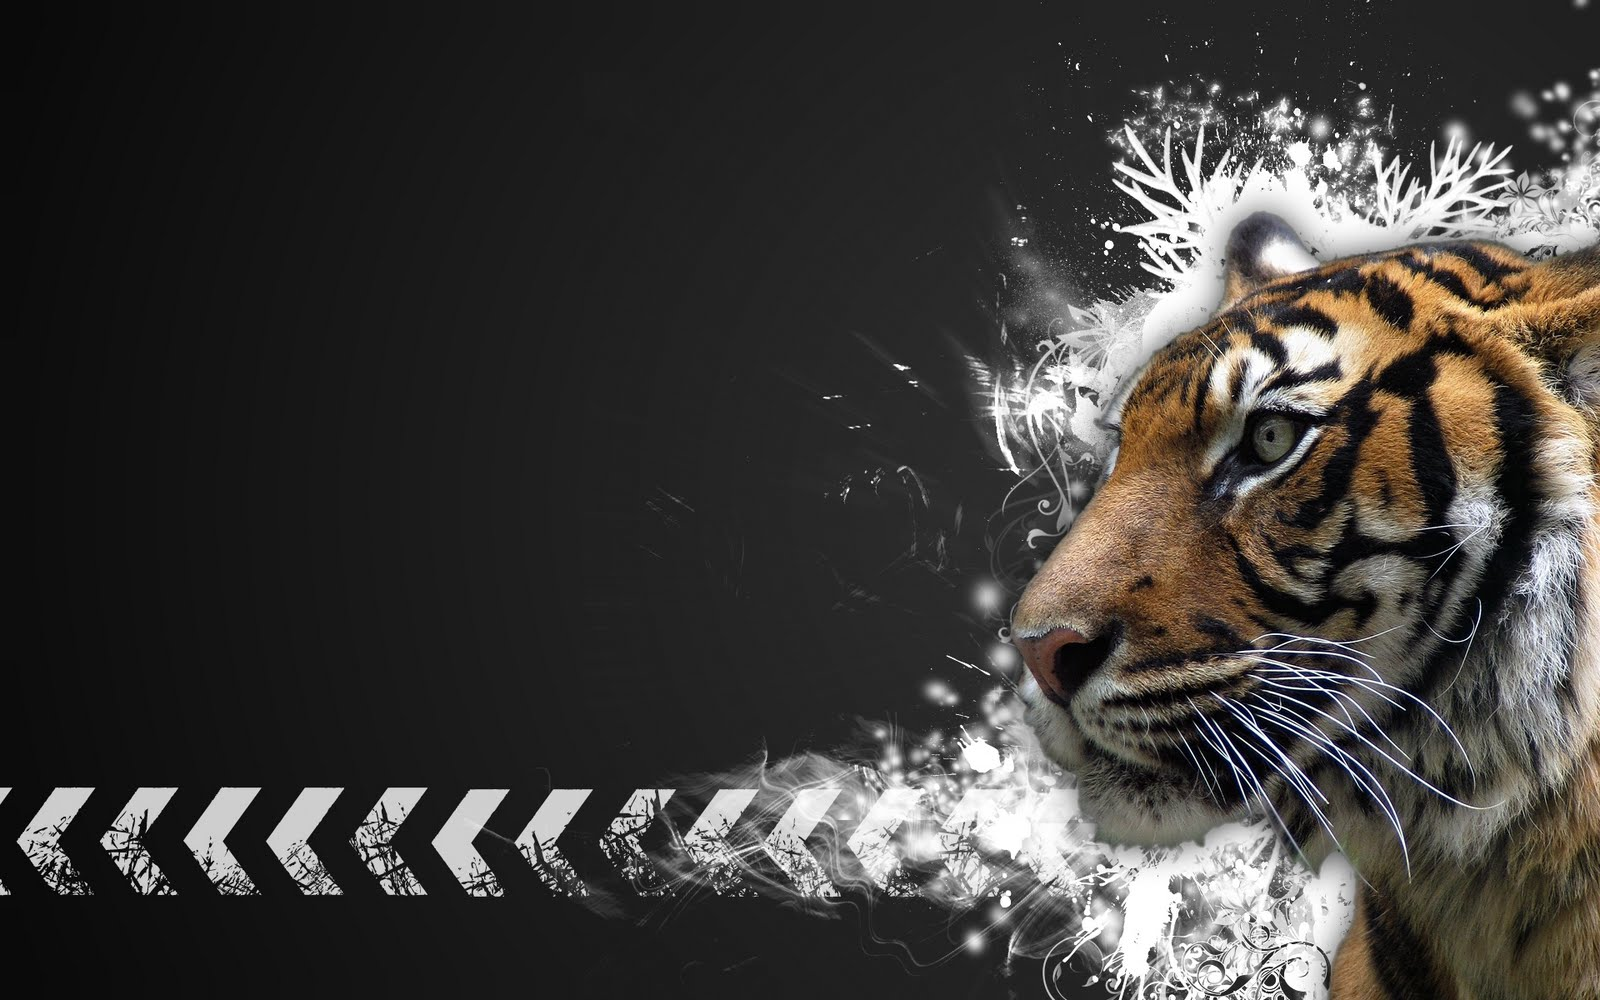 http://1.bp.blogspot.com/-BjqQdZue32g/TdVTZA-IVBI/AAAAAAAAAQ4/m1s0h9u2iLQ/s1600/tiger_wallpapers_hd_Tiger_Vector_Widescreen_HD_Wallpaper.jpg